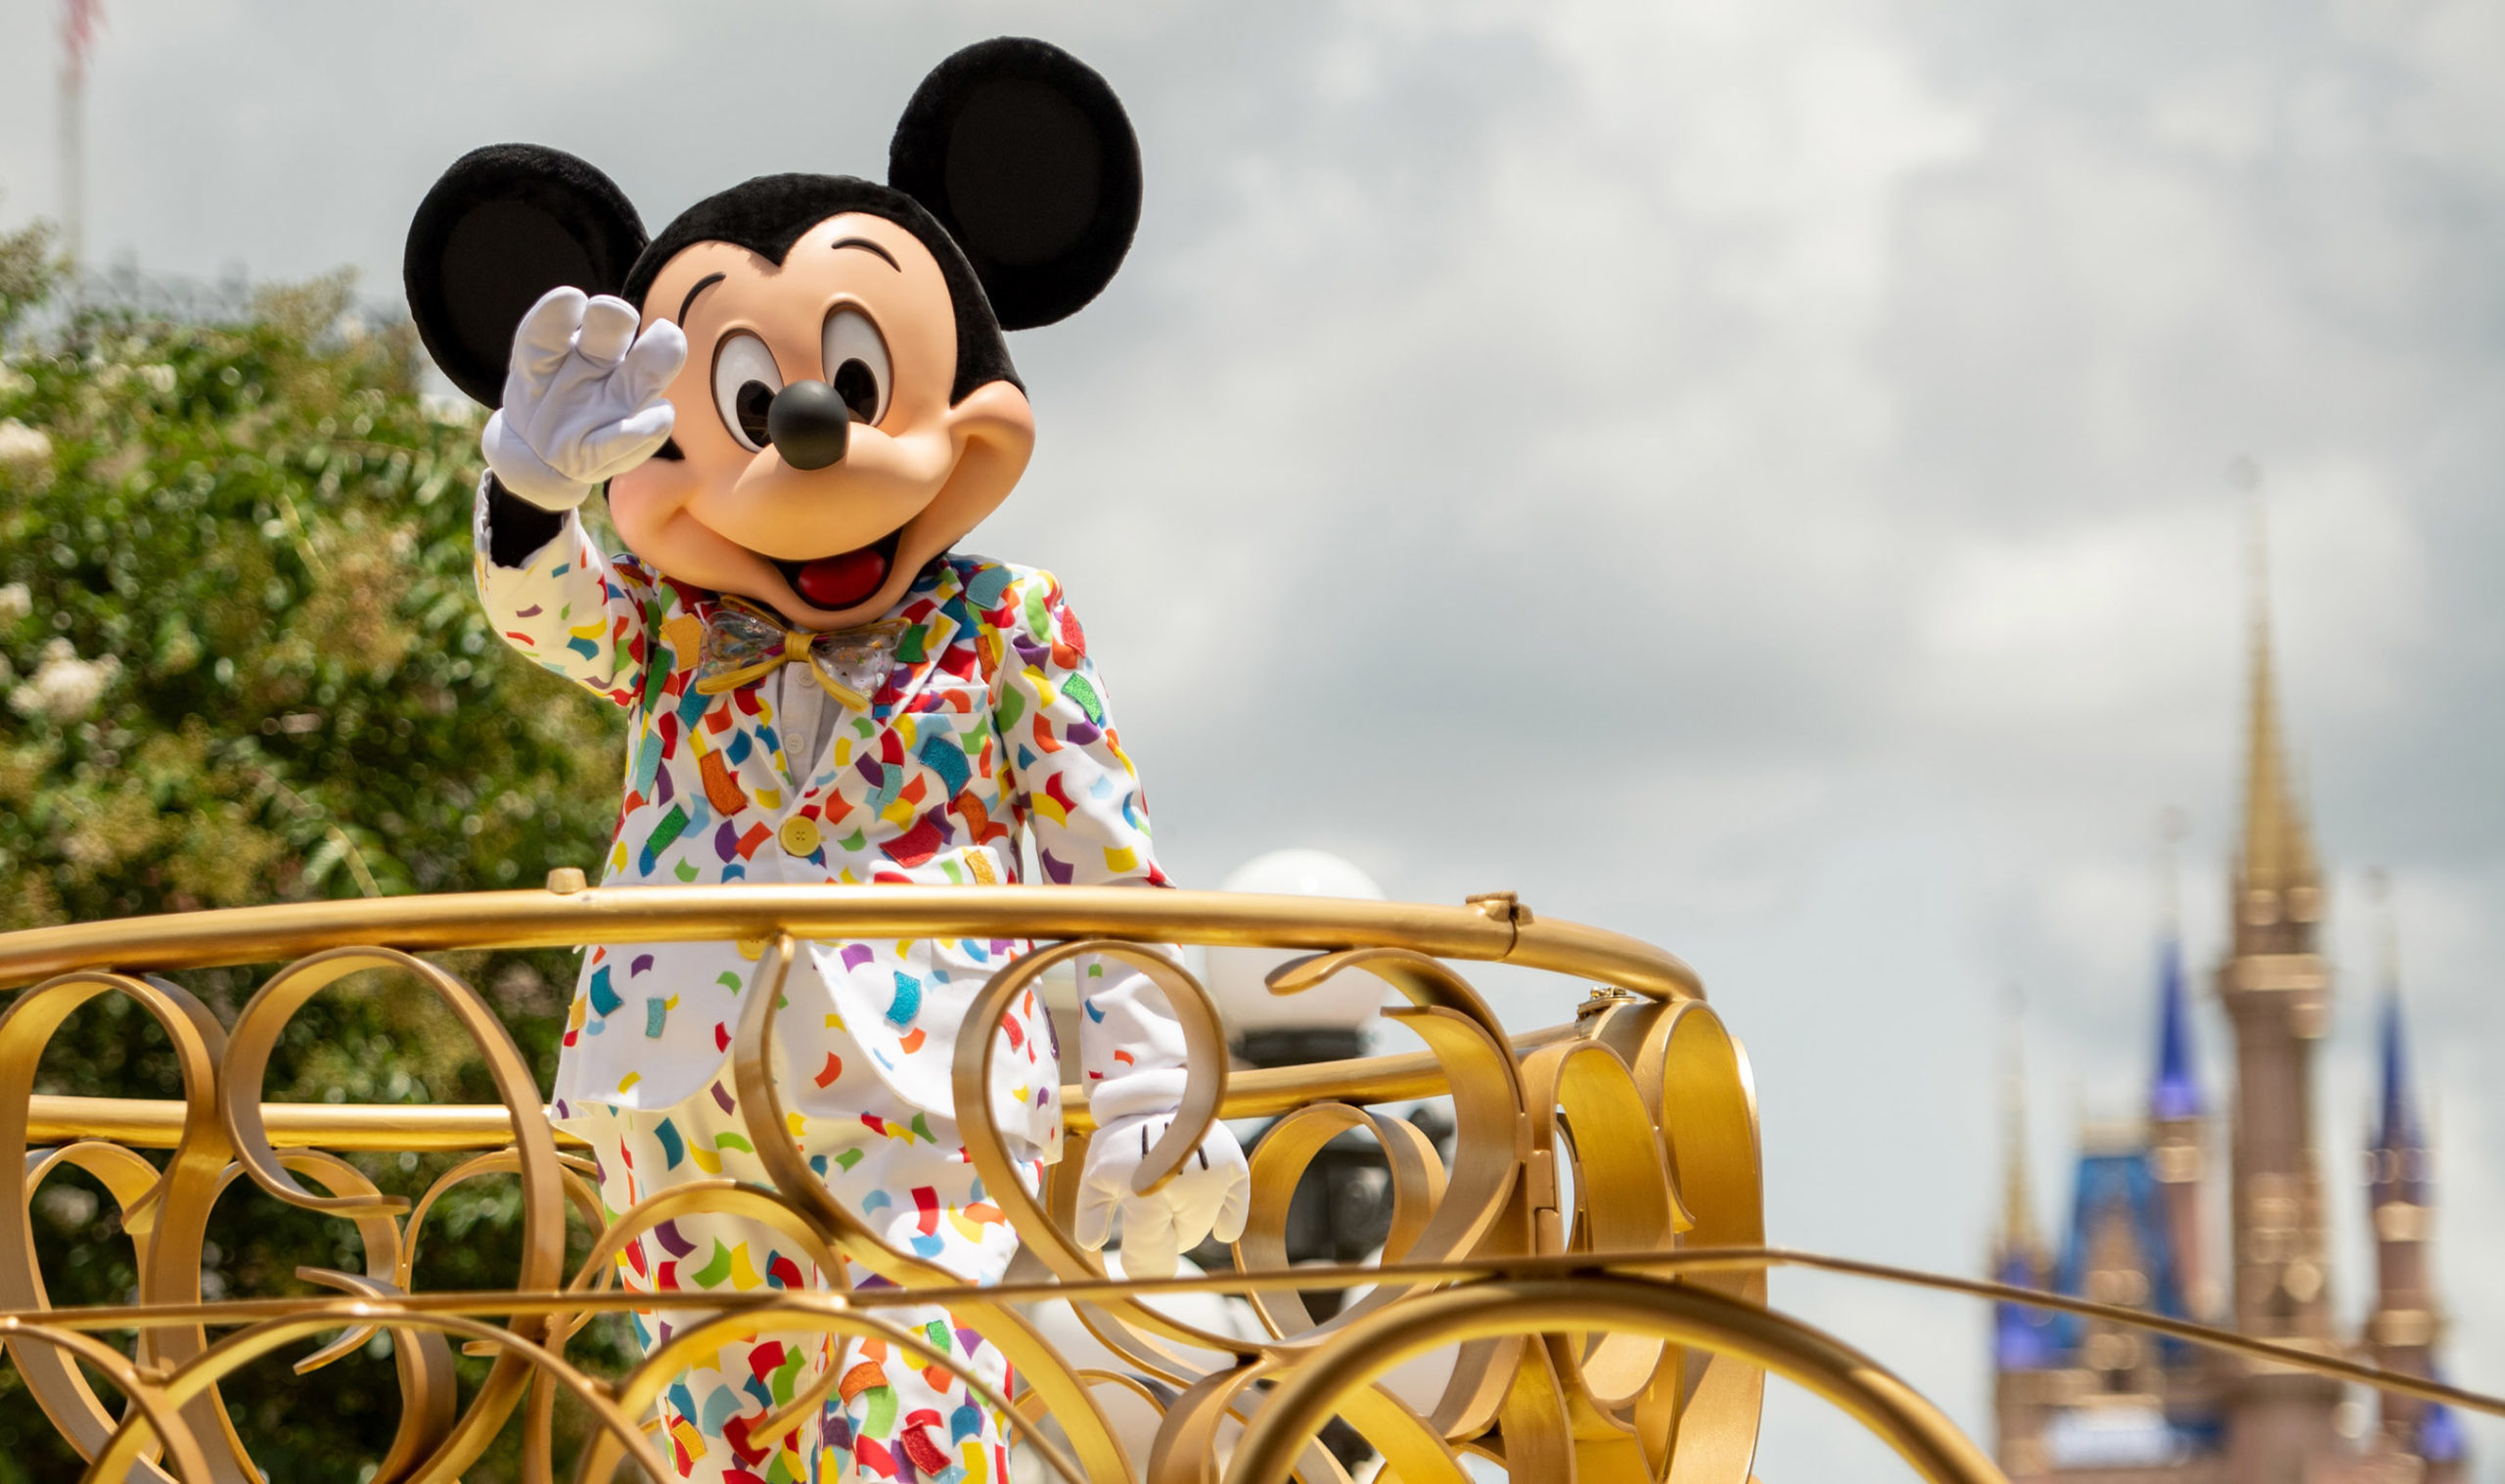 'Mickey and Friends Cavalcade' at Magic Kingdom Park